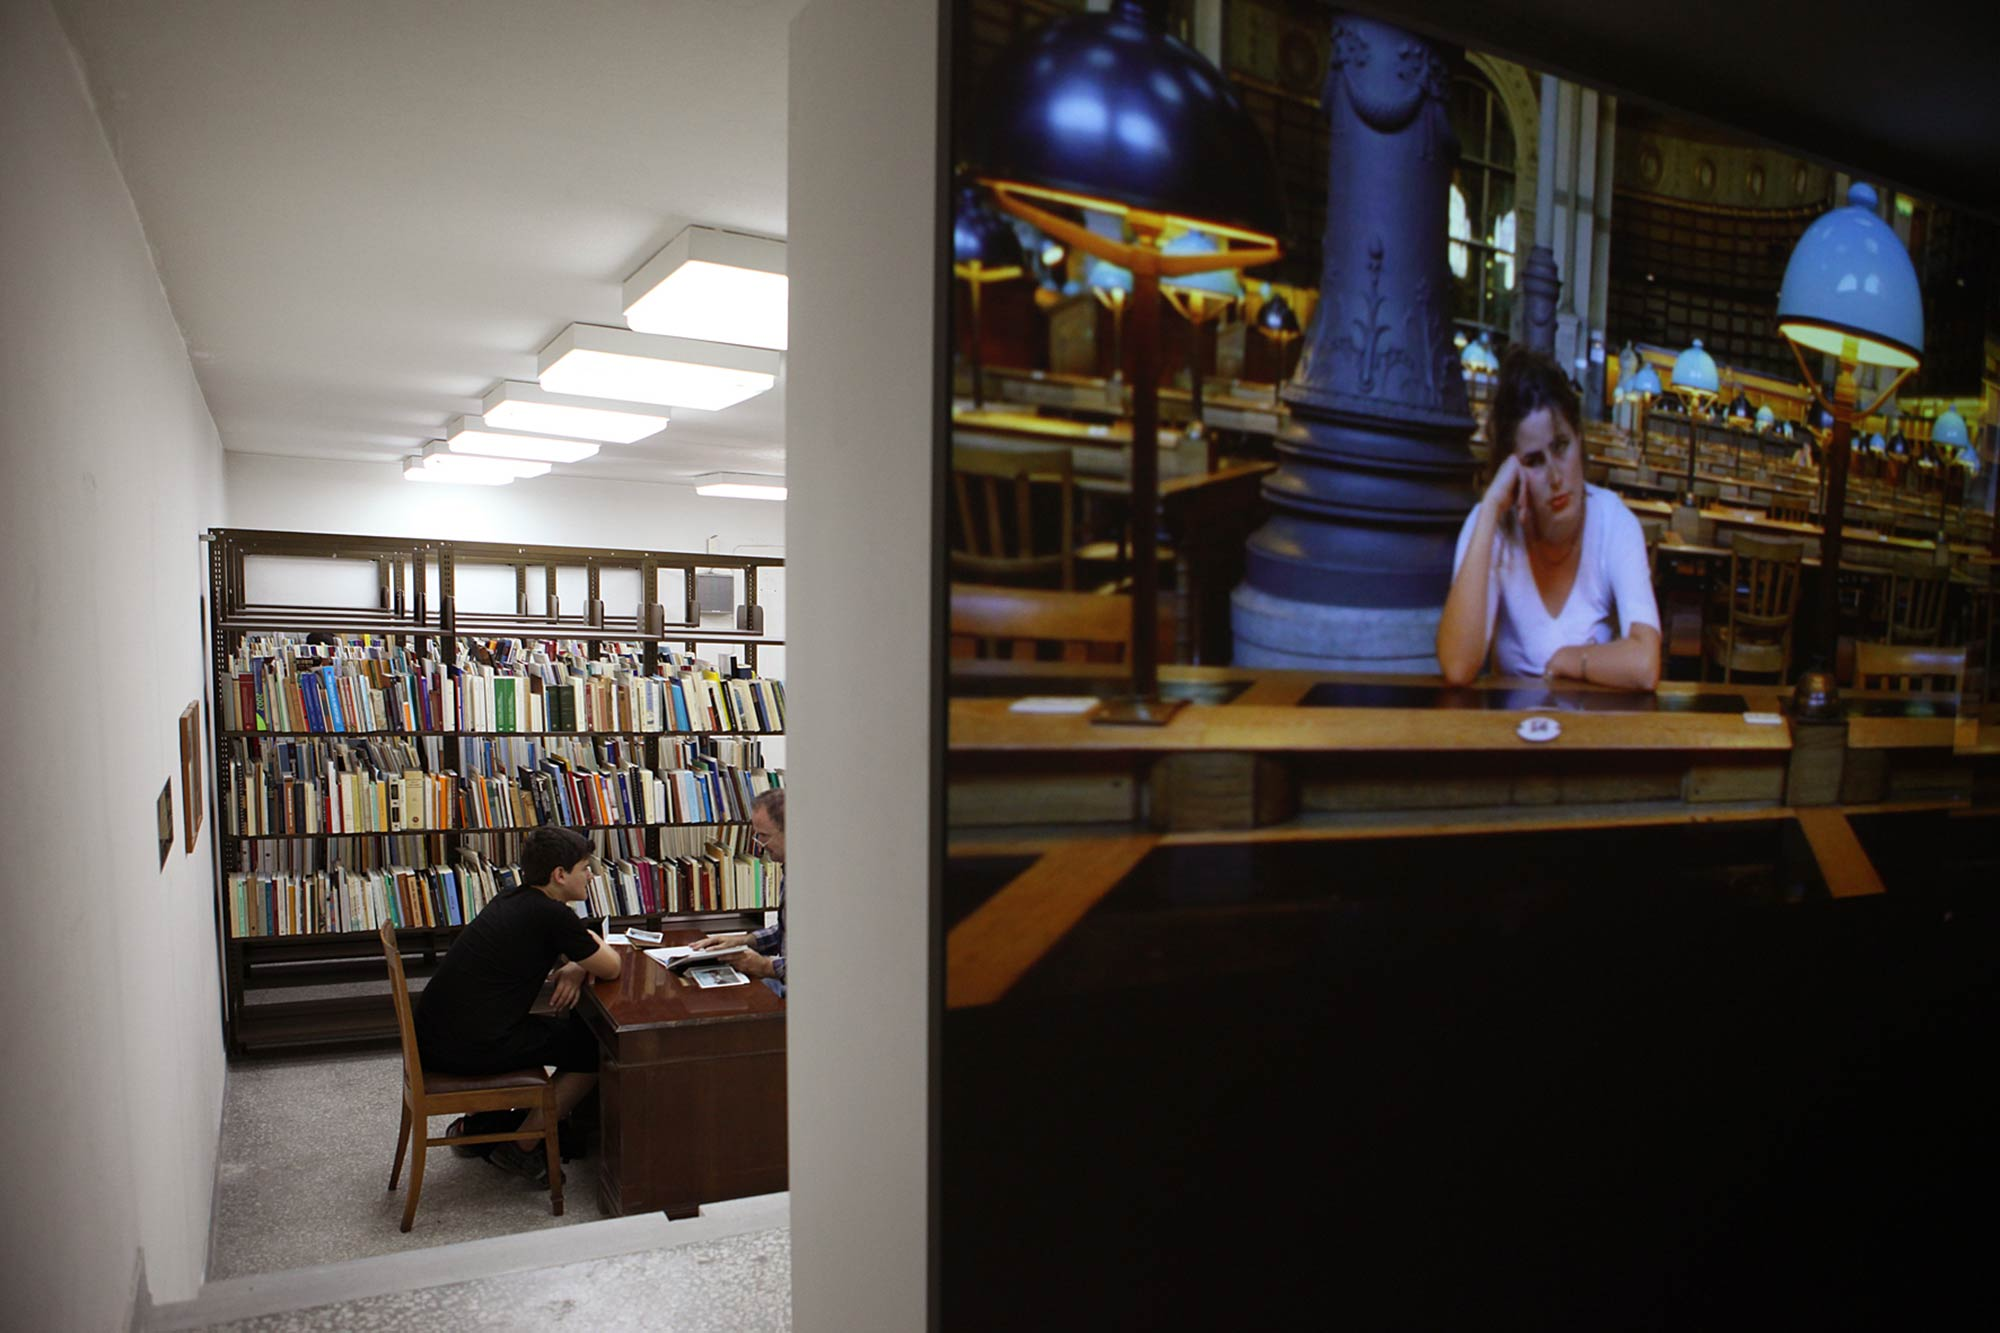 Installation View | A THOUSAND DOORS | Gennadius Library | Photo Natalia Tsoukala | NEON & Whitechapel Gallery